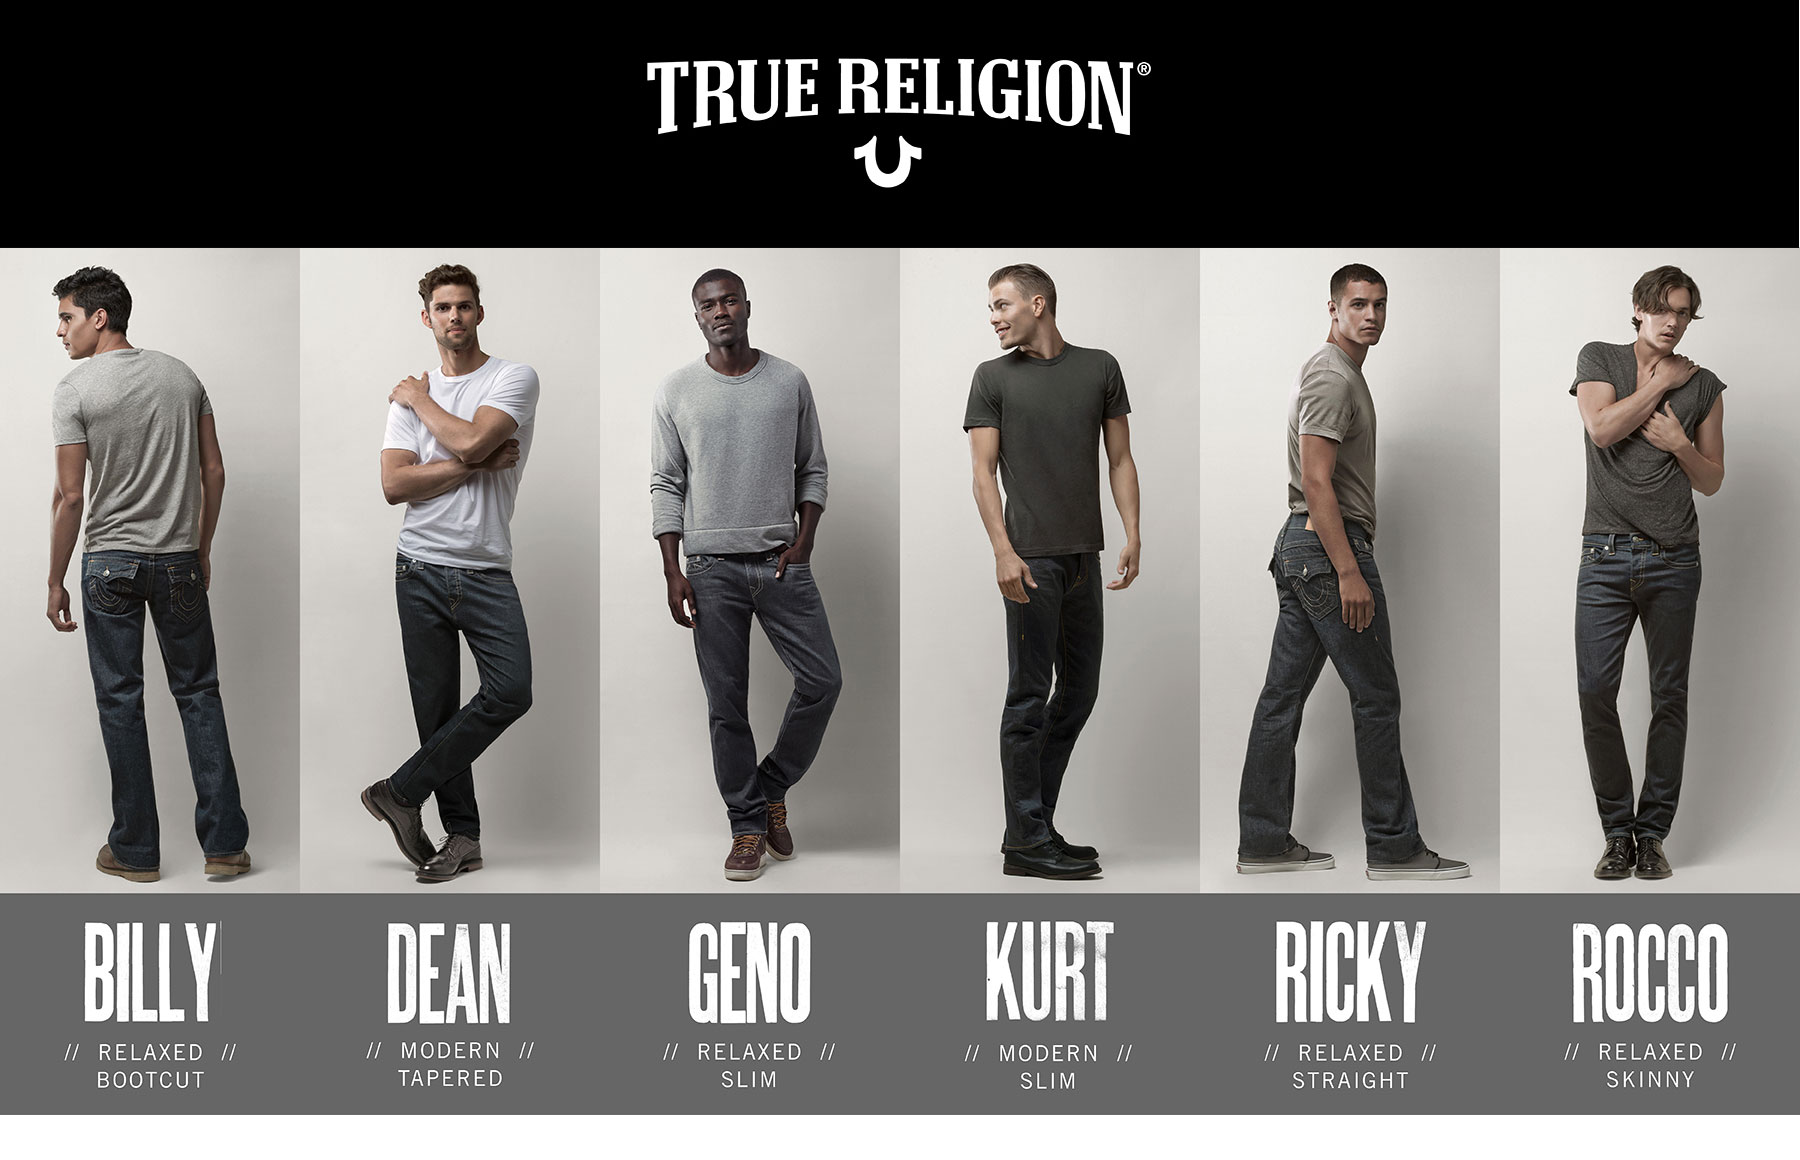 True Religion Fit Guide